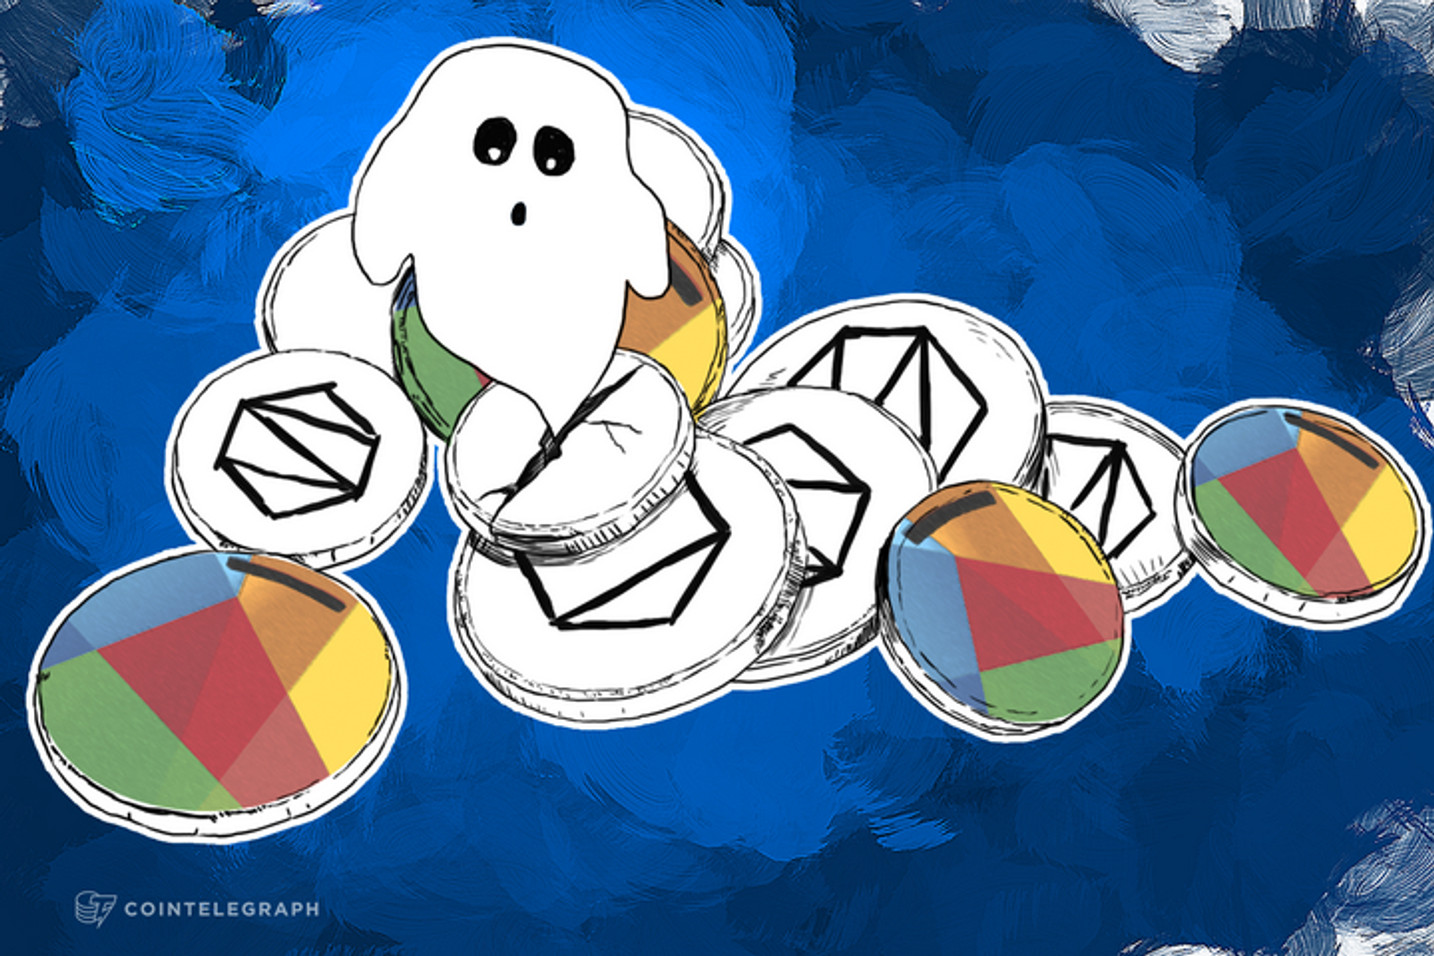 The Alt-Cracks: Ghostcoin Gets Some Ghost Coins, Sterlingcoin Continues Its March, Bittrex Updates Policy & More